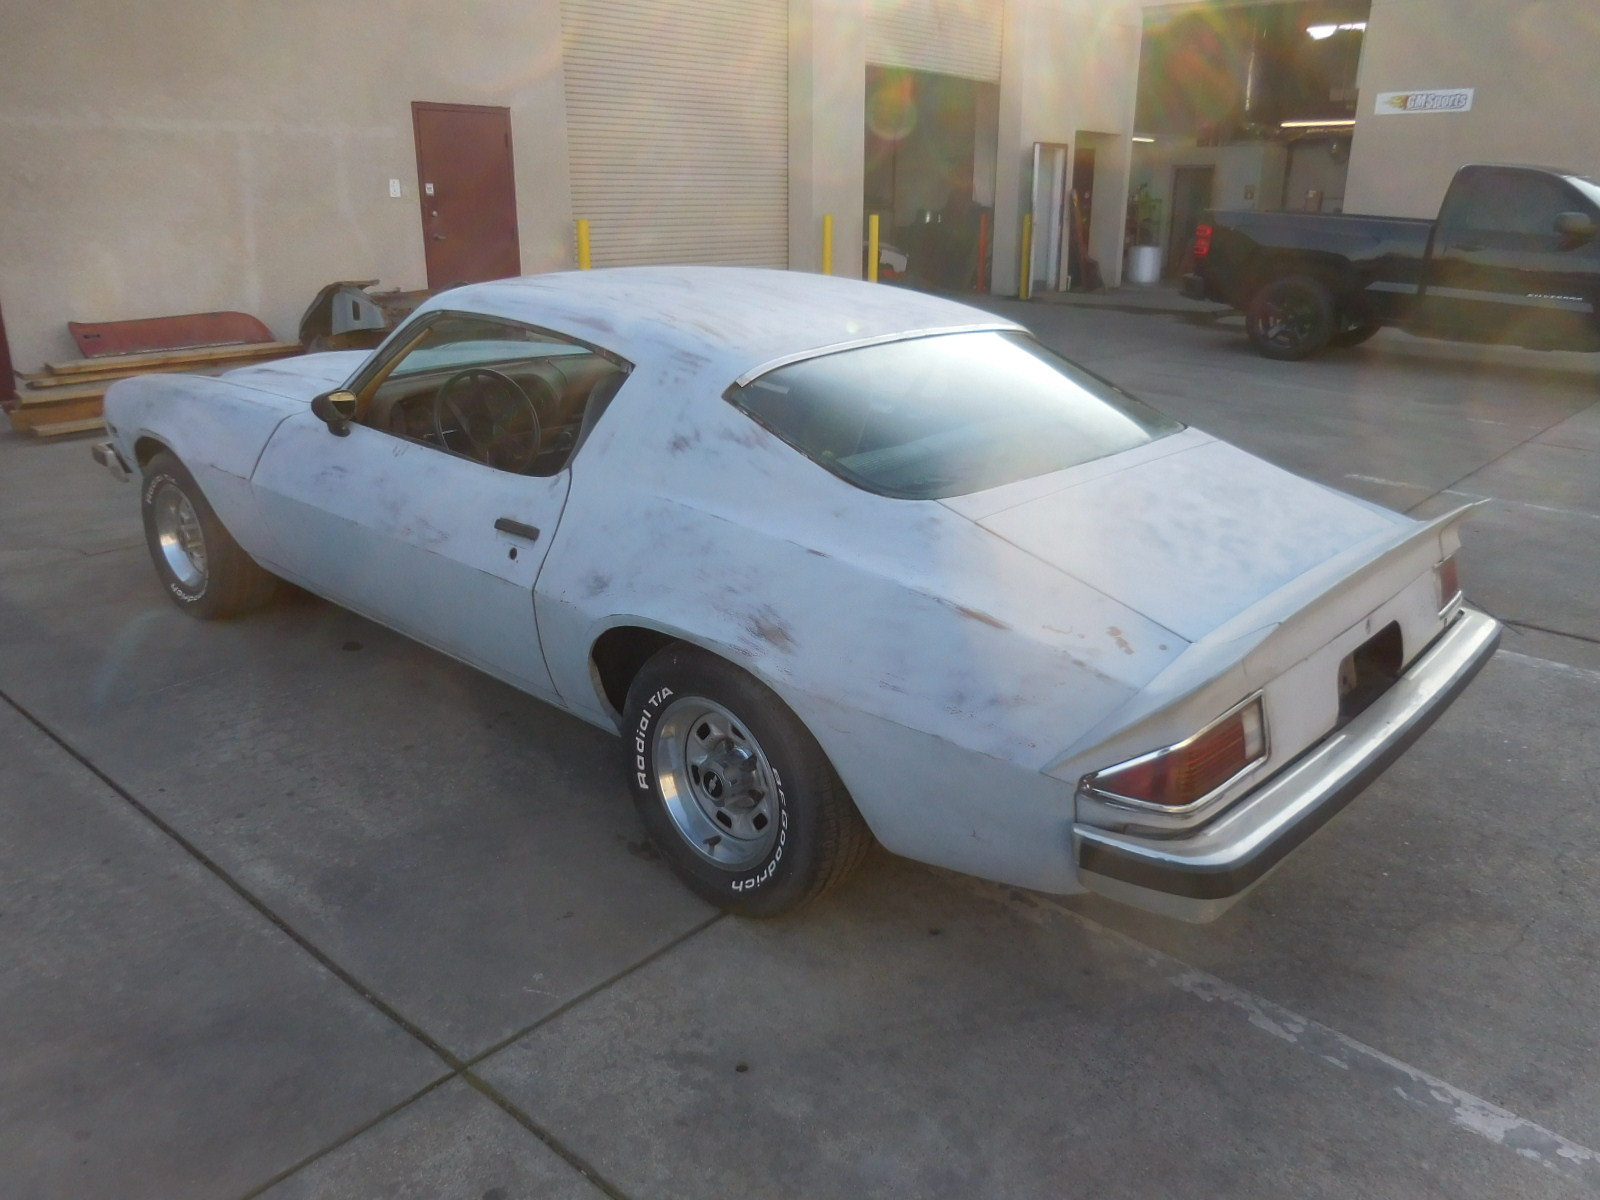 1974, Chevrolet, Camaro, 400, 3, cars, for,sale,cars for sale, Speed, Great, Running, Driving, Project, Car,